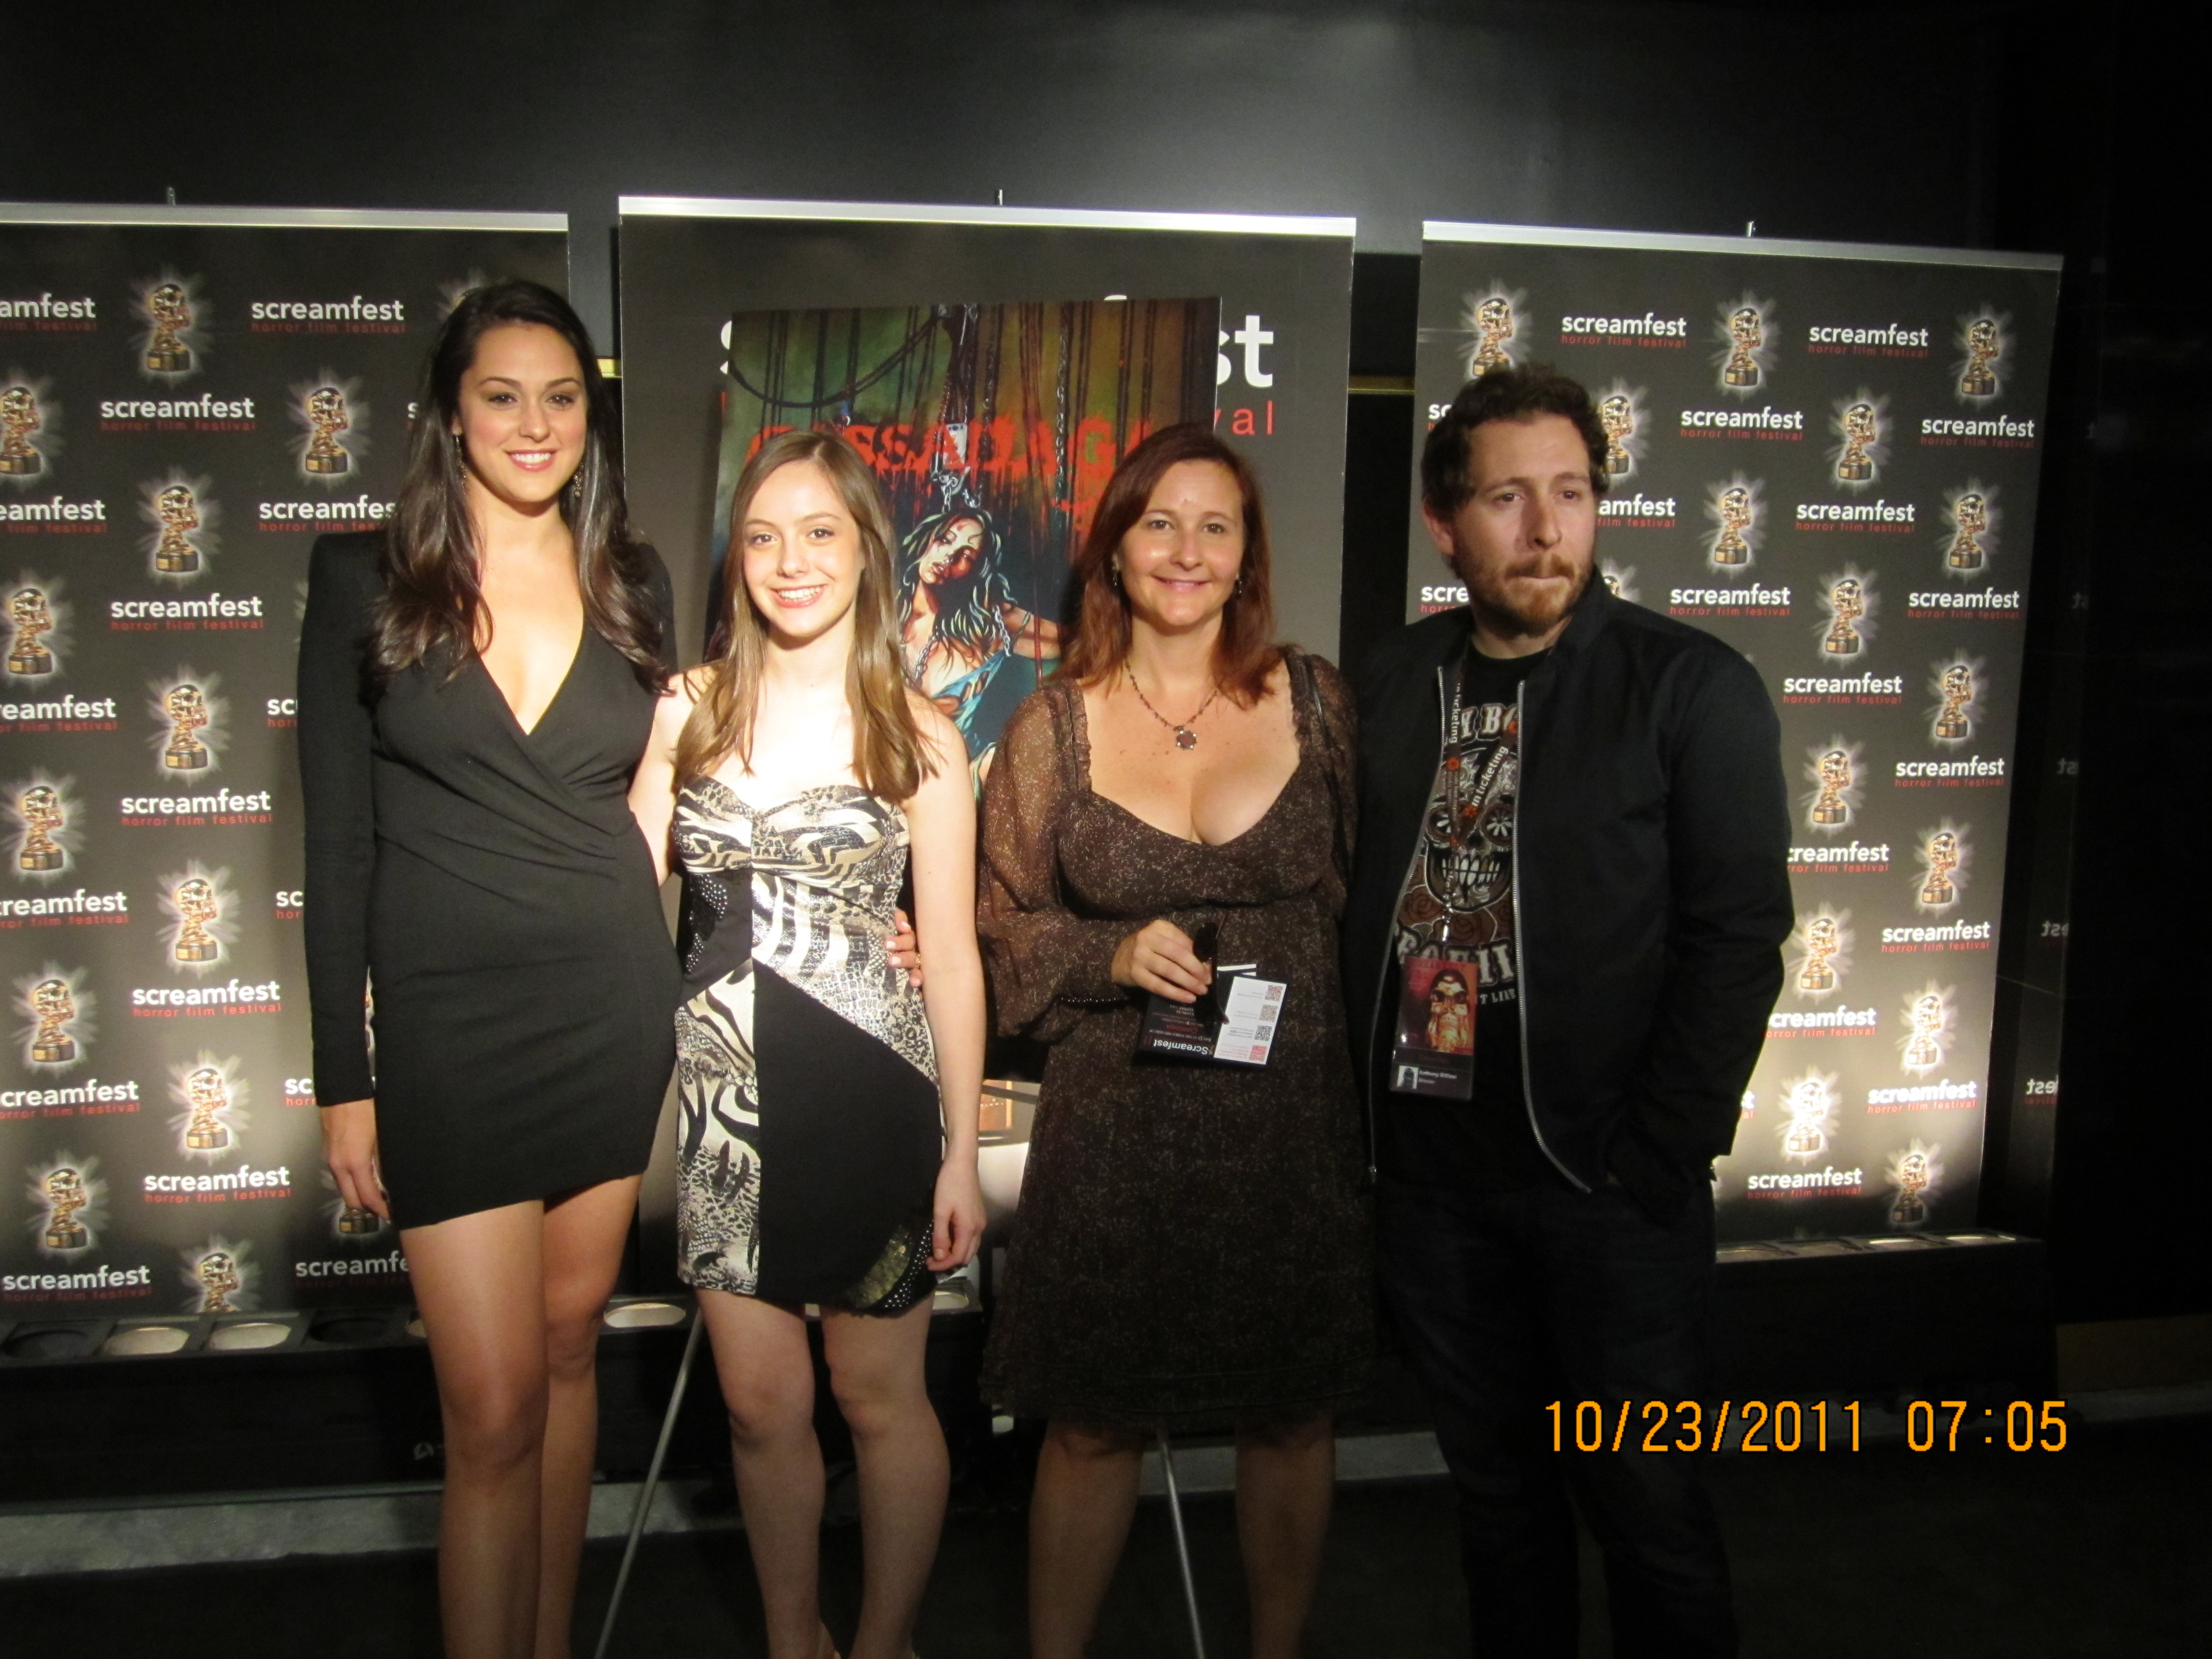 World Premiere of 'Cassadaga' with Actors Kelen Coleman (Lily), Sarah Sculco (Michelle) and Director, Anthony DiBlasi